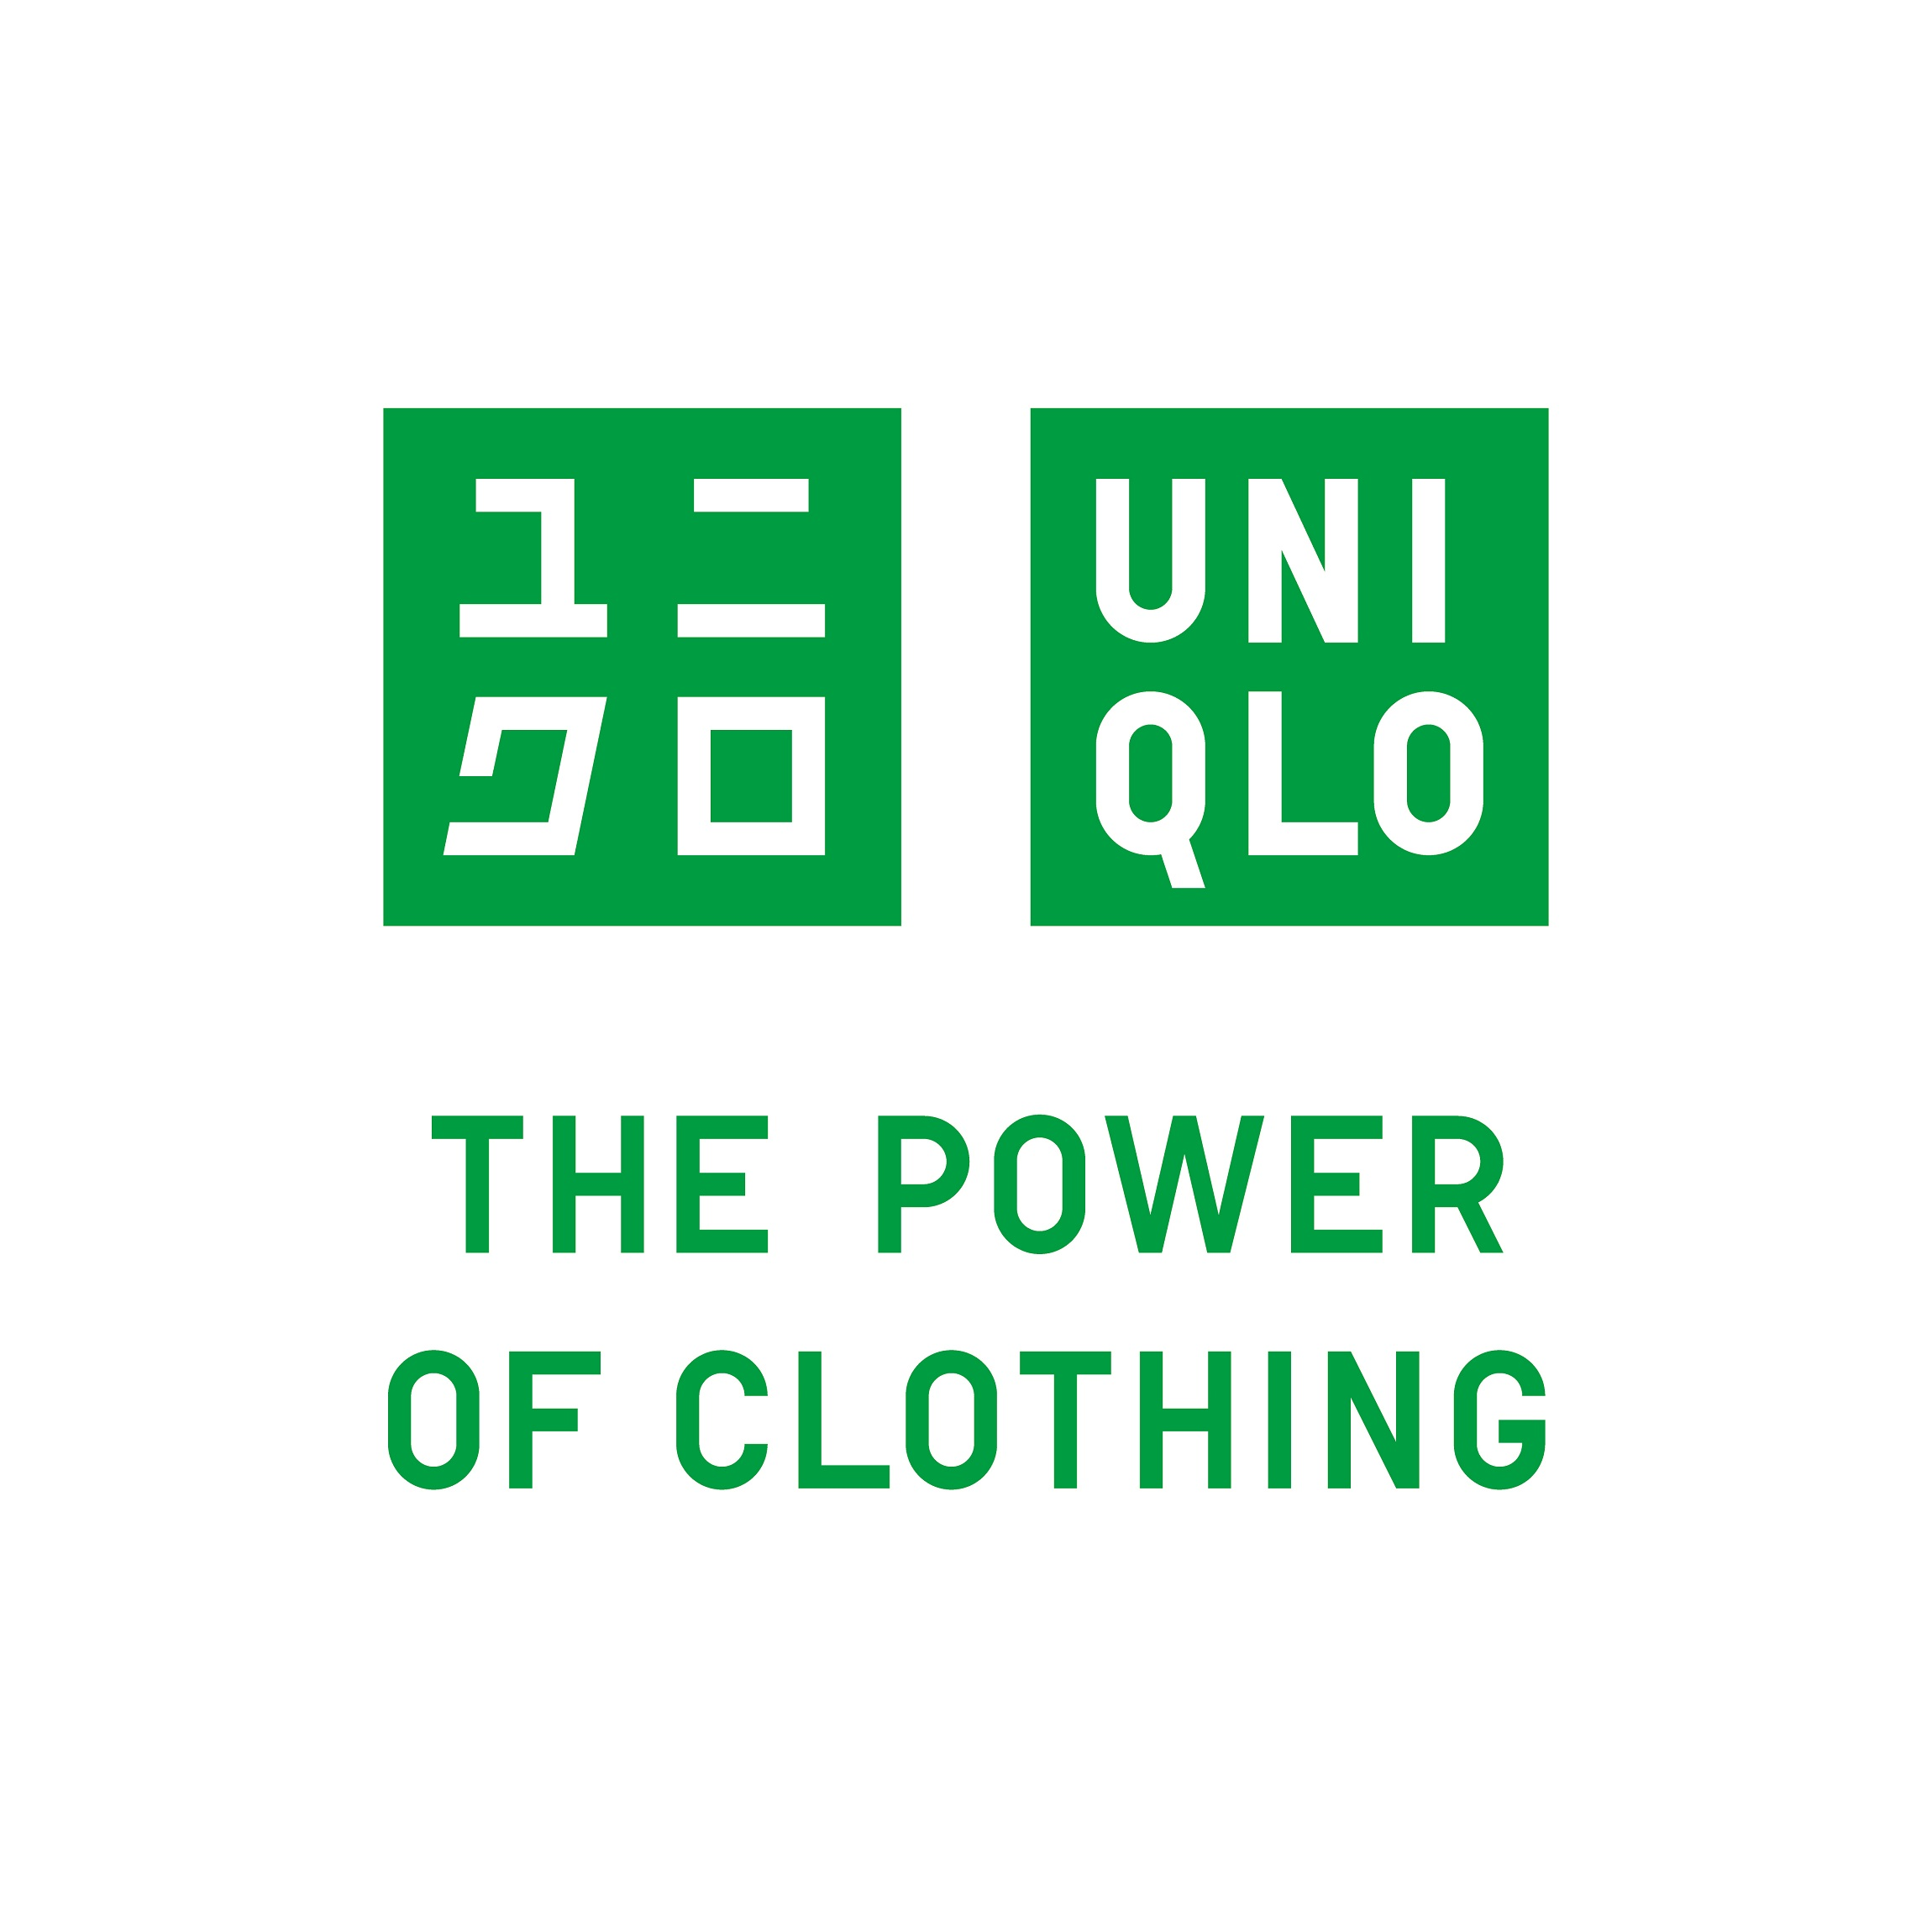 RE.UNIQLO initiative aimed at encouraging customers to participate in giving unwanted clothing new life